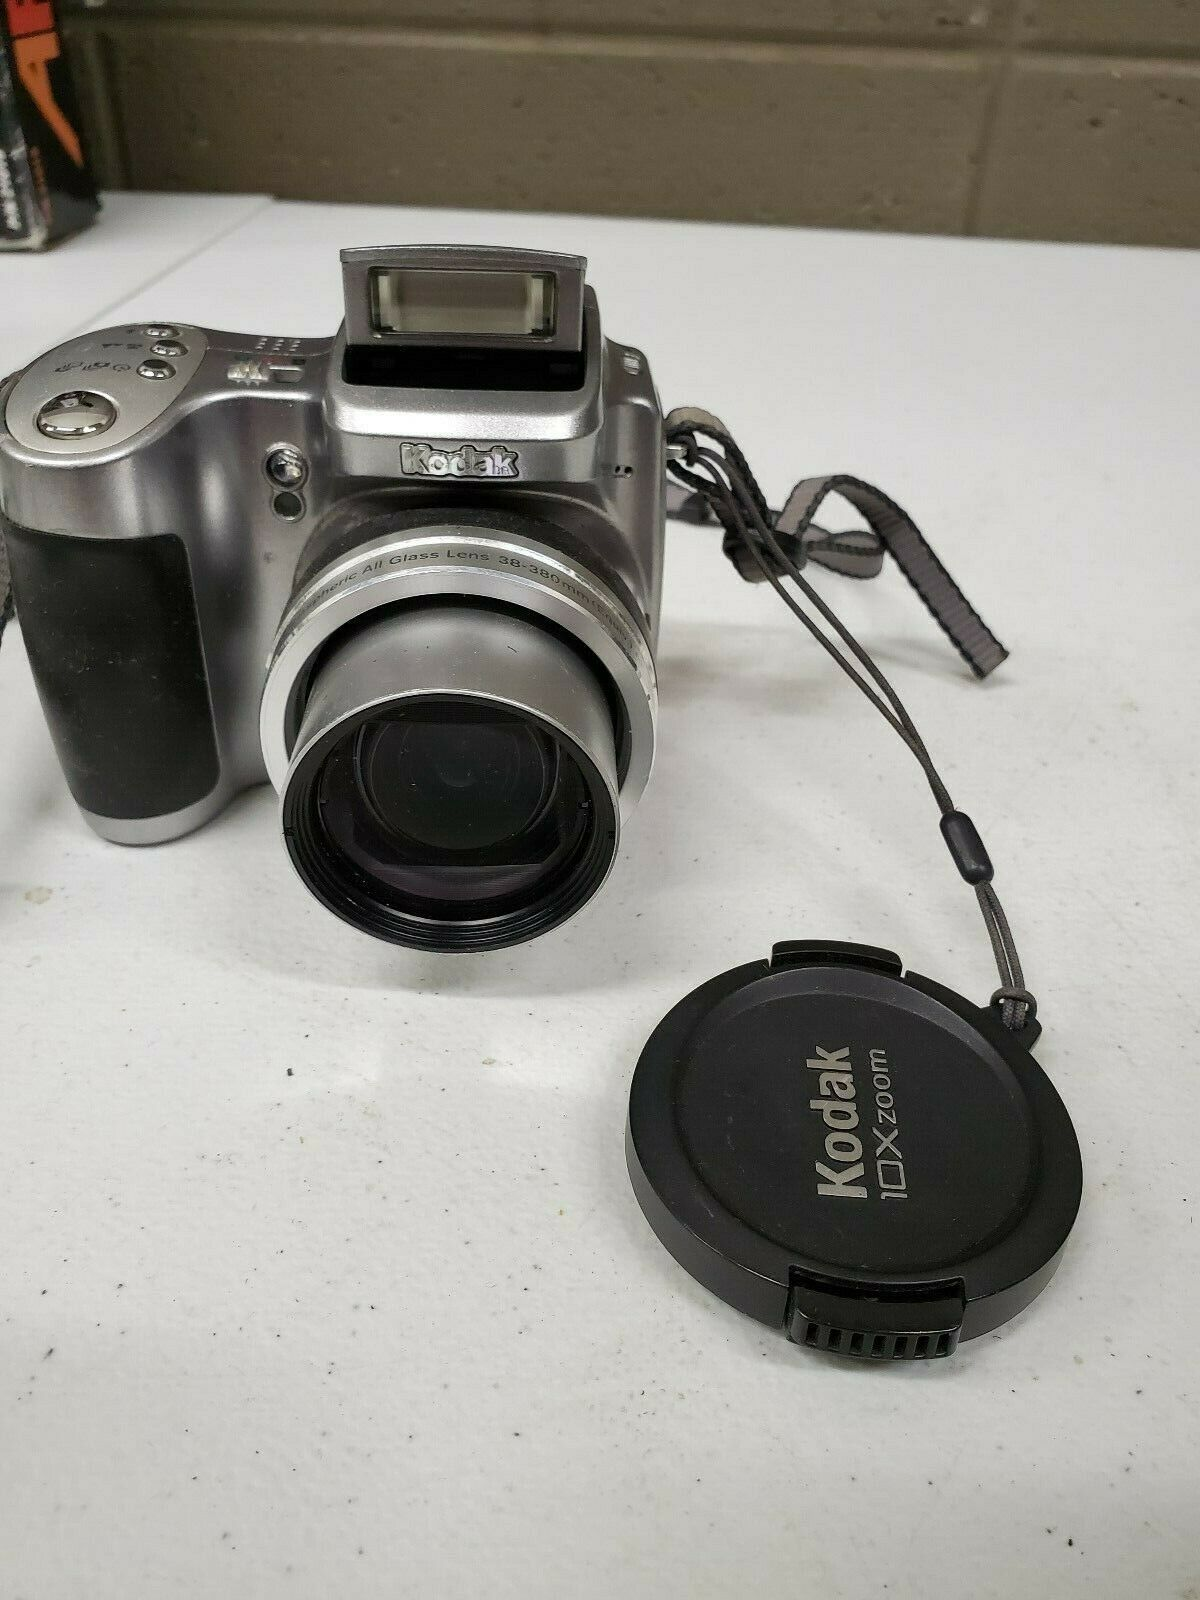 Primary image for Kodak EasyShare Z740 5.0MP Digital Camera - Silver